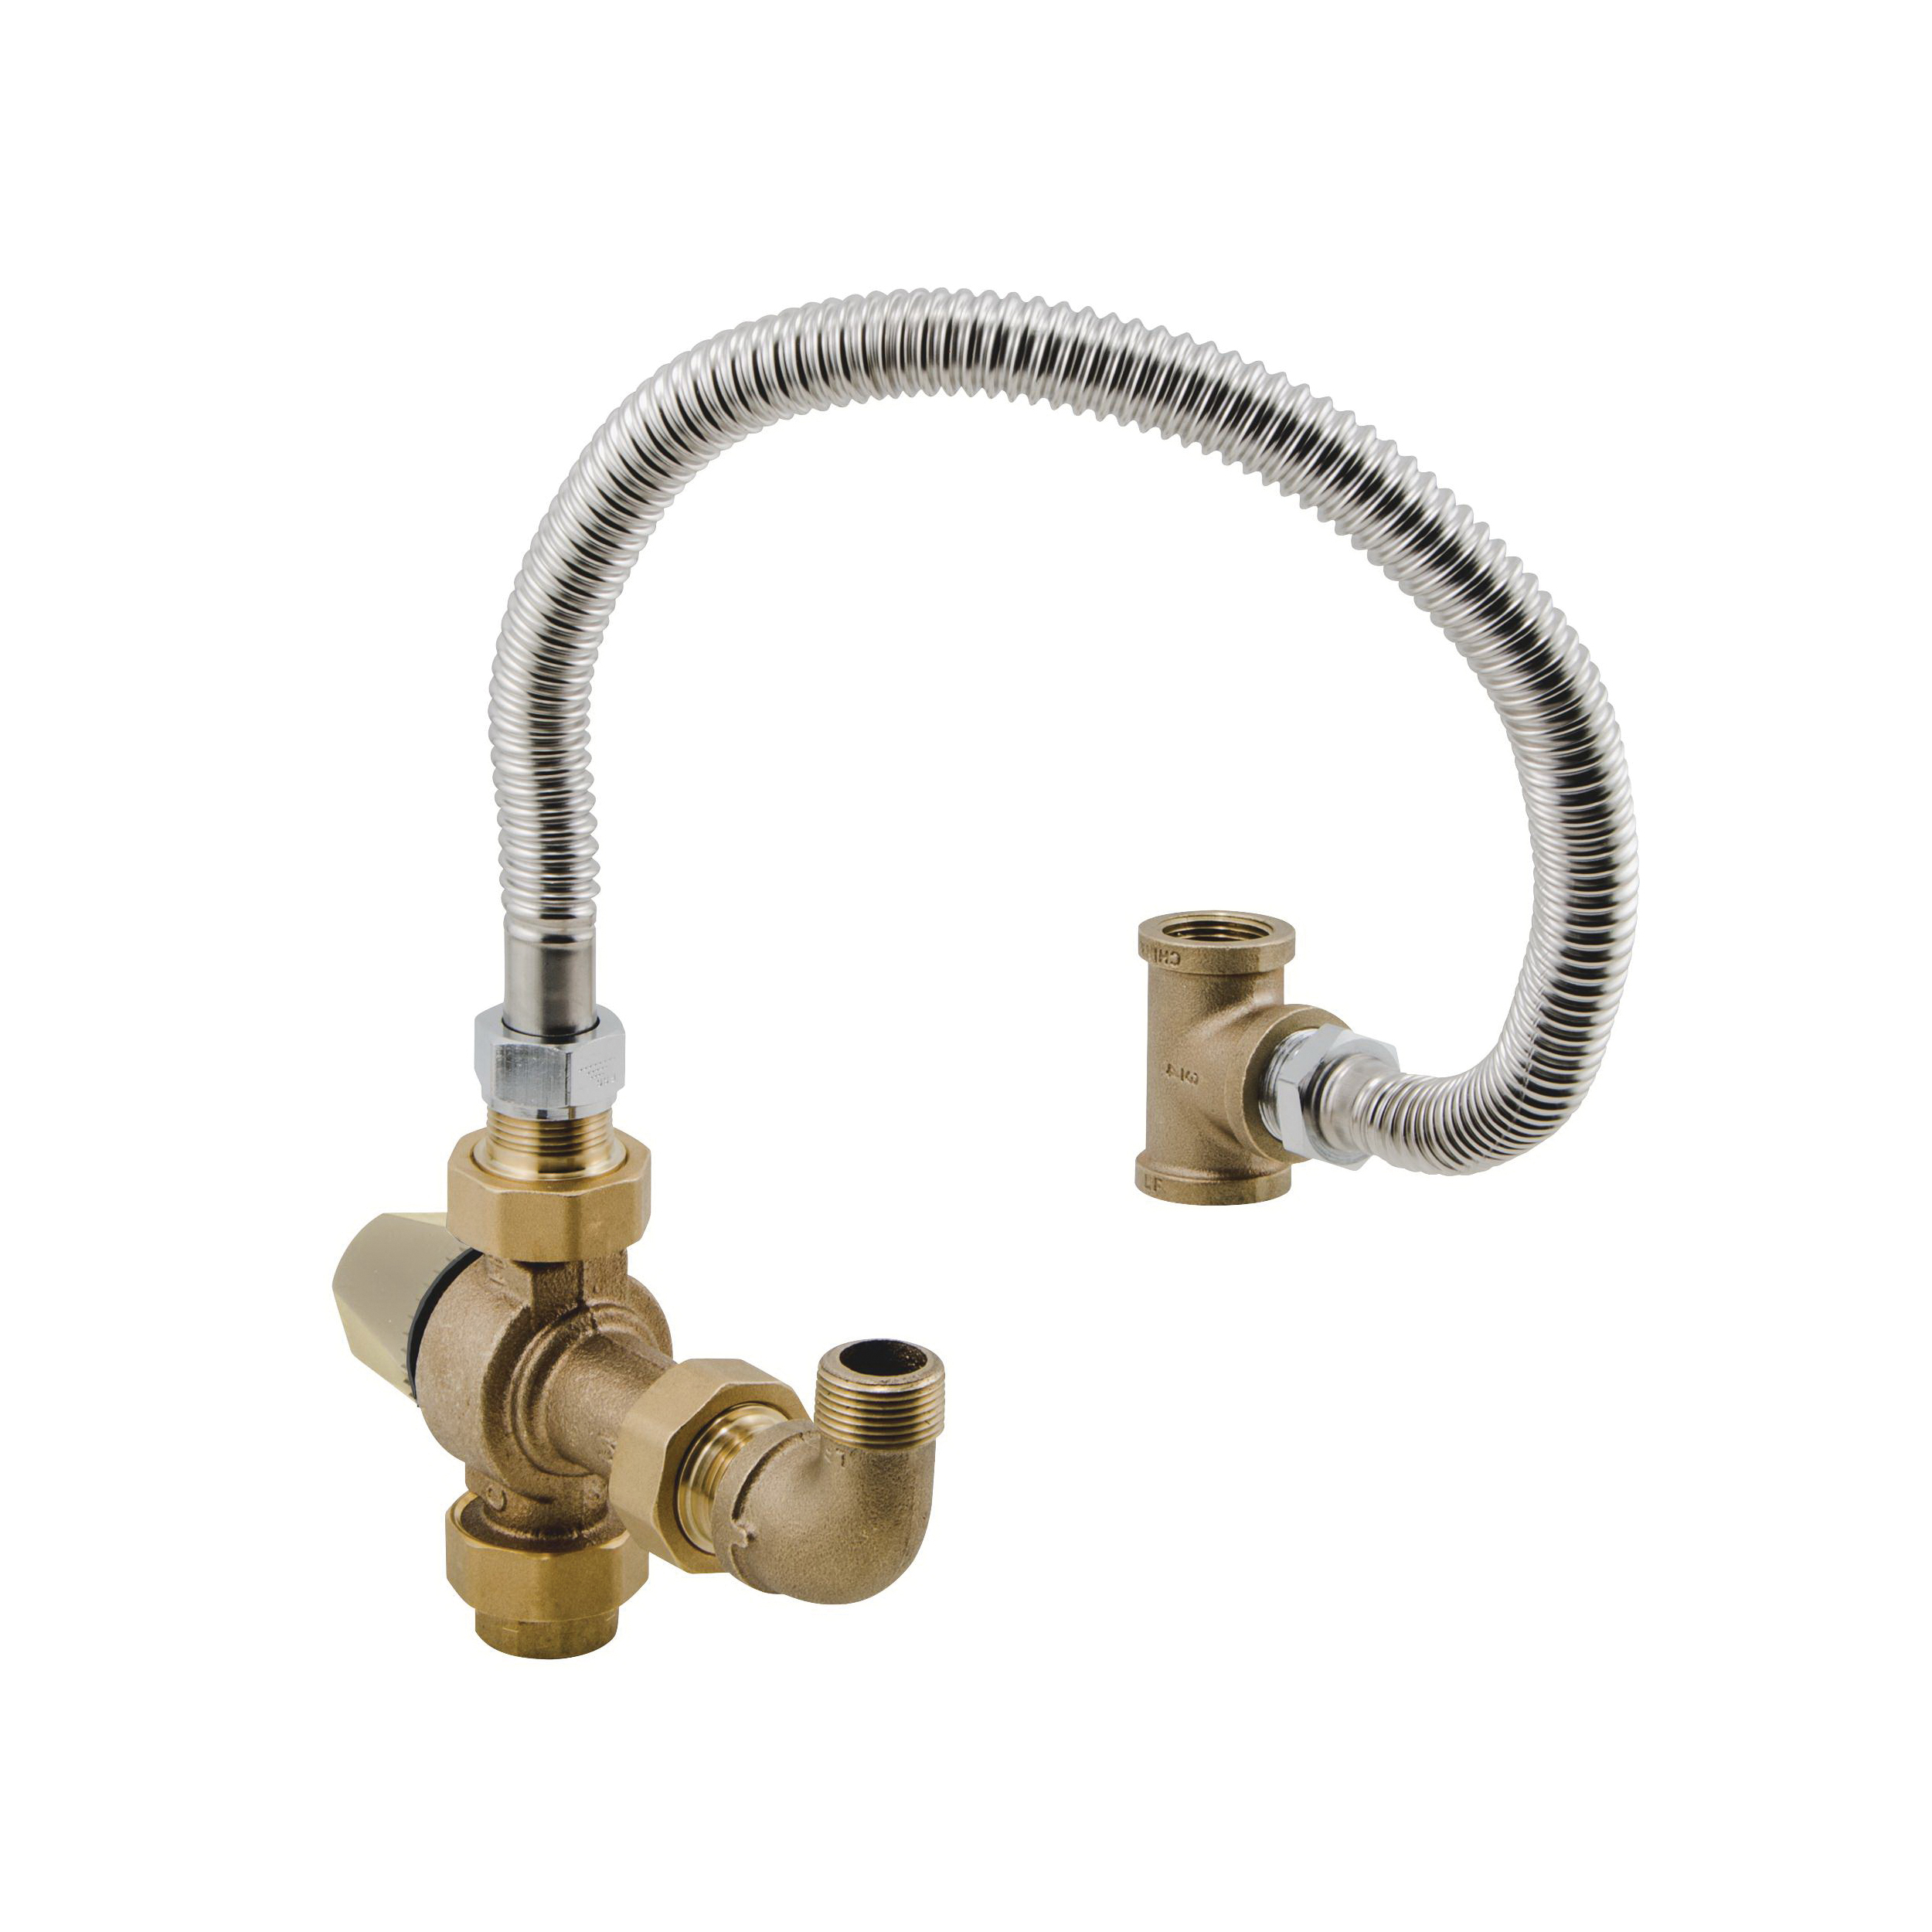 WATTS® 0559178 LFMMV-HTK Capacity Extender Thermostatic Mixing Valve, 3/4 in, Thread Union, 125 psi, 0.5 gpm, Brass Body